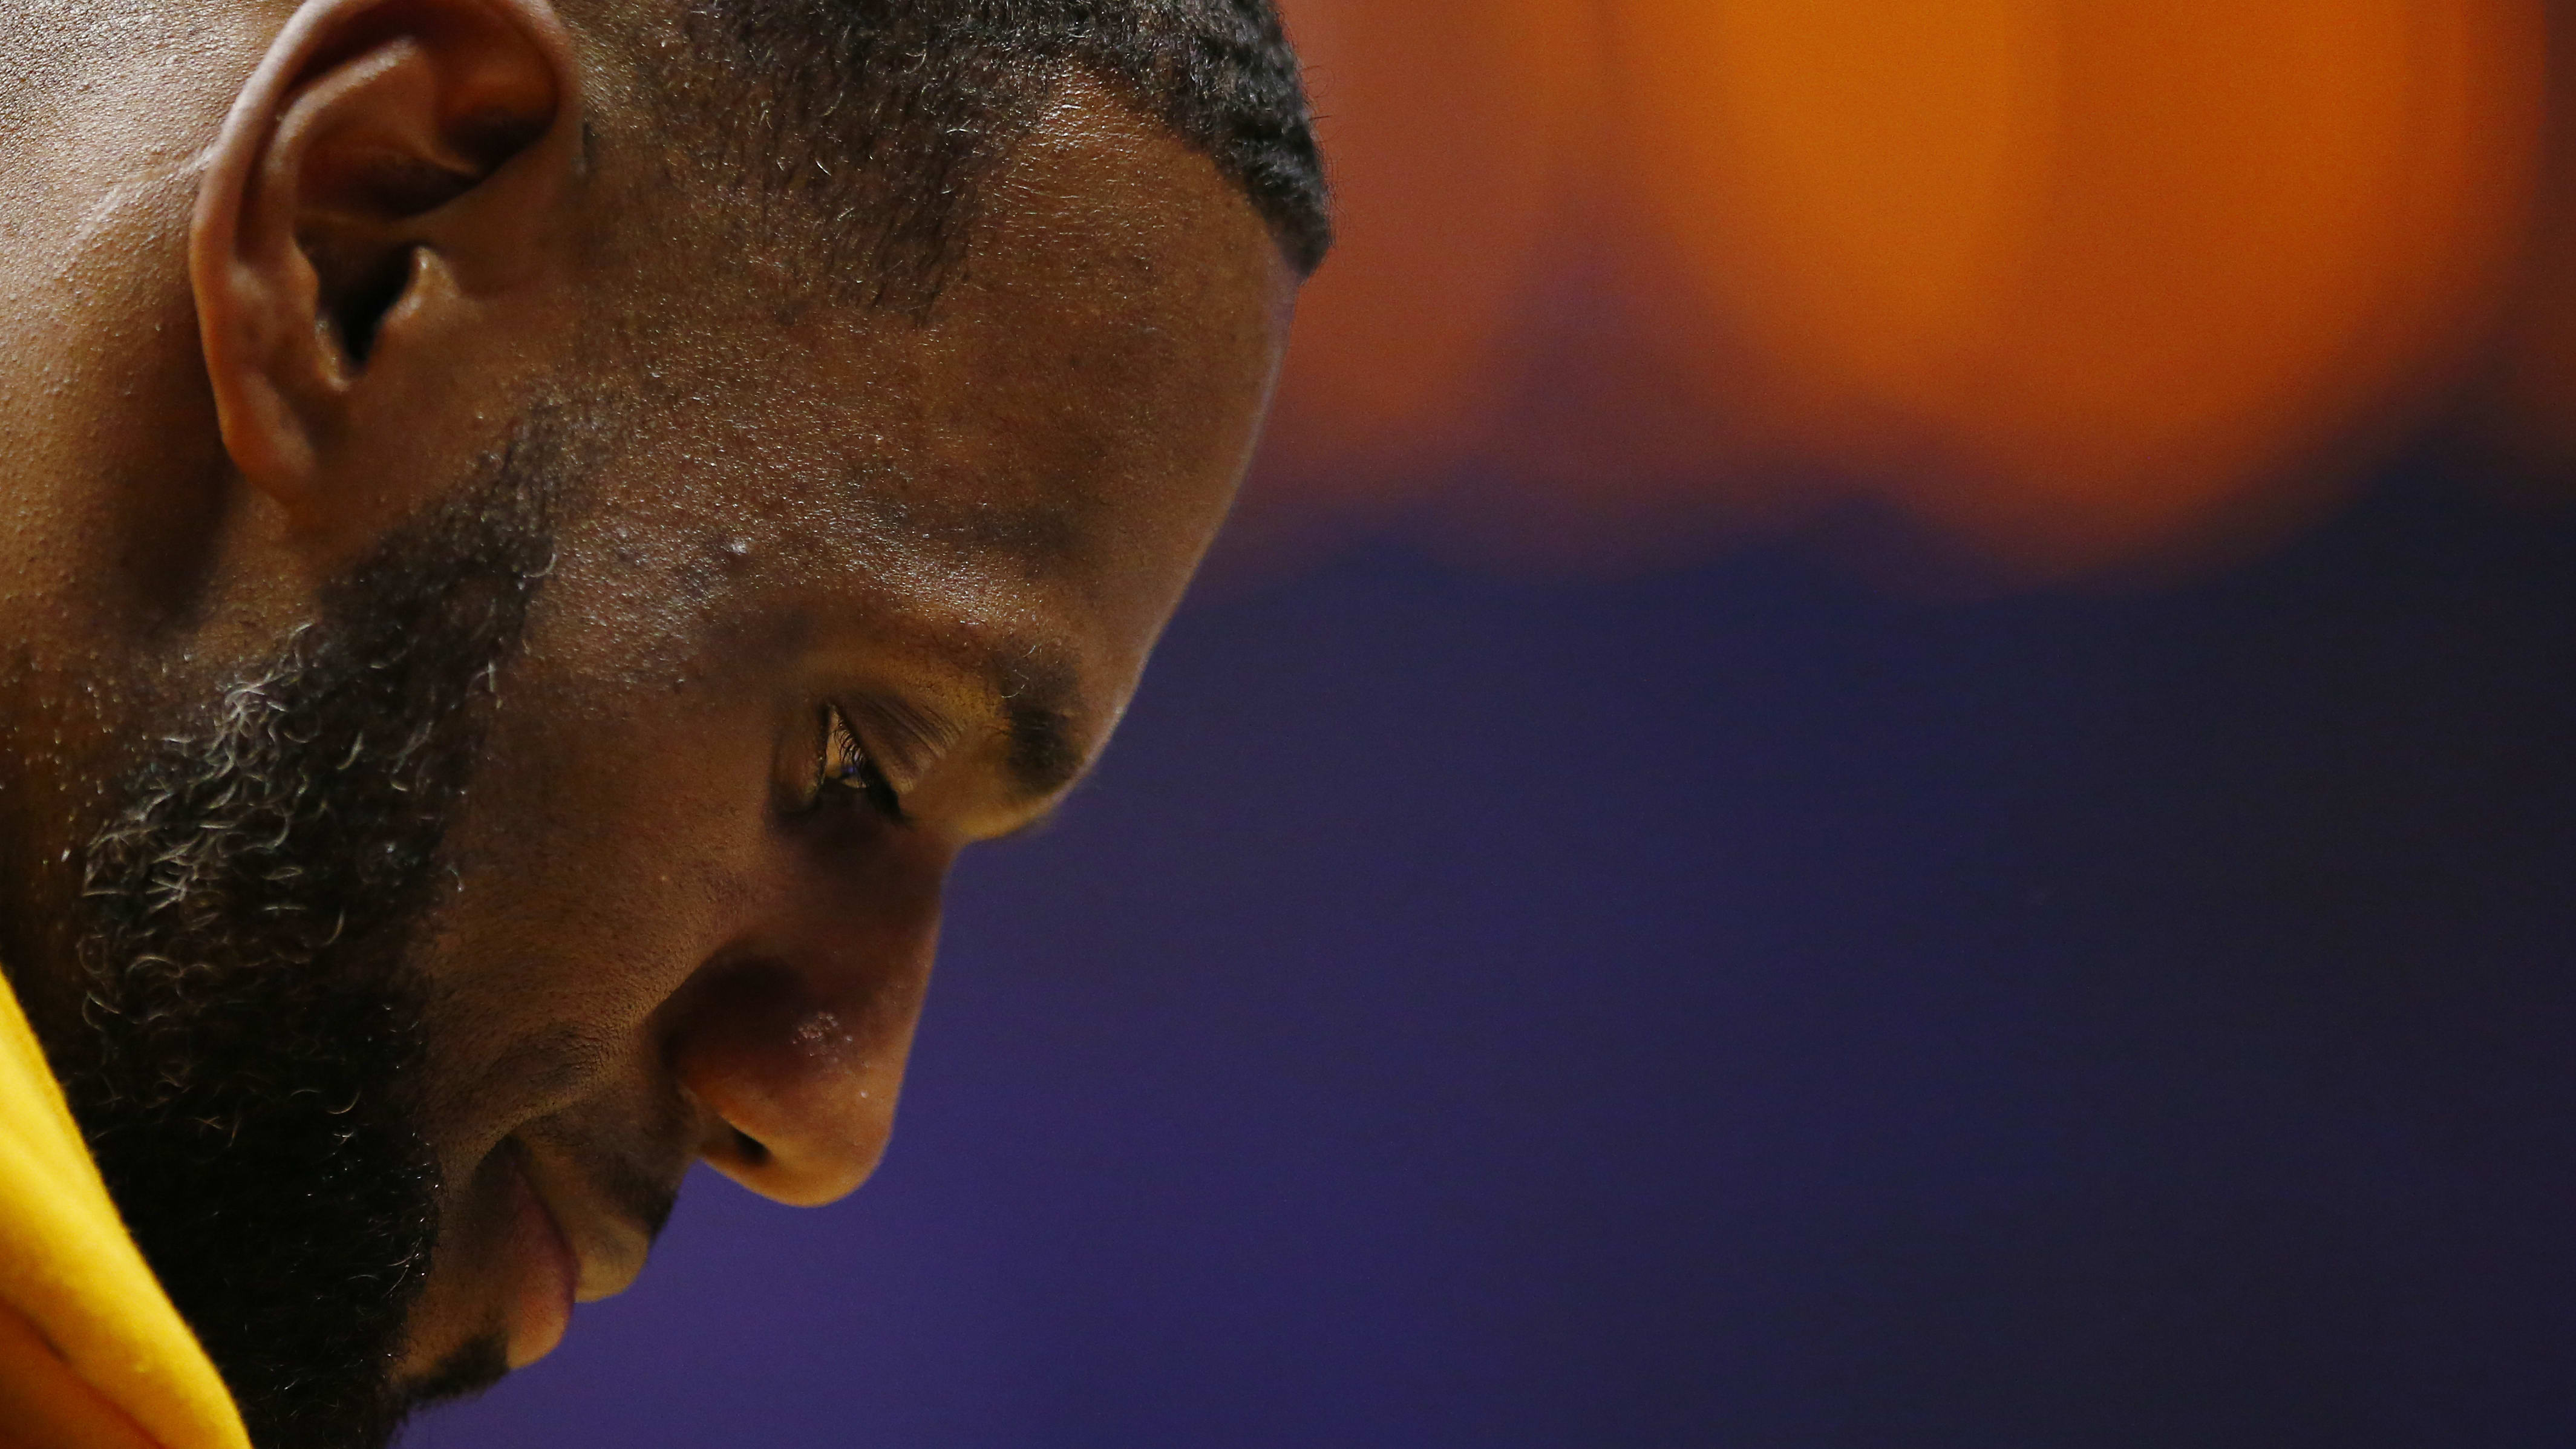 LOS ANGELES, CALIFORNIA - APRIL 05: LeBron James #23 of the Los Angeles Lakers looks on during a timeout in the first half of the game against the Los Angeles Clippers at Staples Center on April 05, 2019 in Los Angeles, California. NOTE TO USER: User expressly acknowledges and agrees that, by downloading and or using this photograph, User is consenting to the terms and conditions of the Getty Images License Agreement. (Photo by Yong Teck Lim/Getty Images)